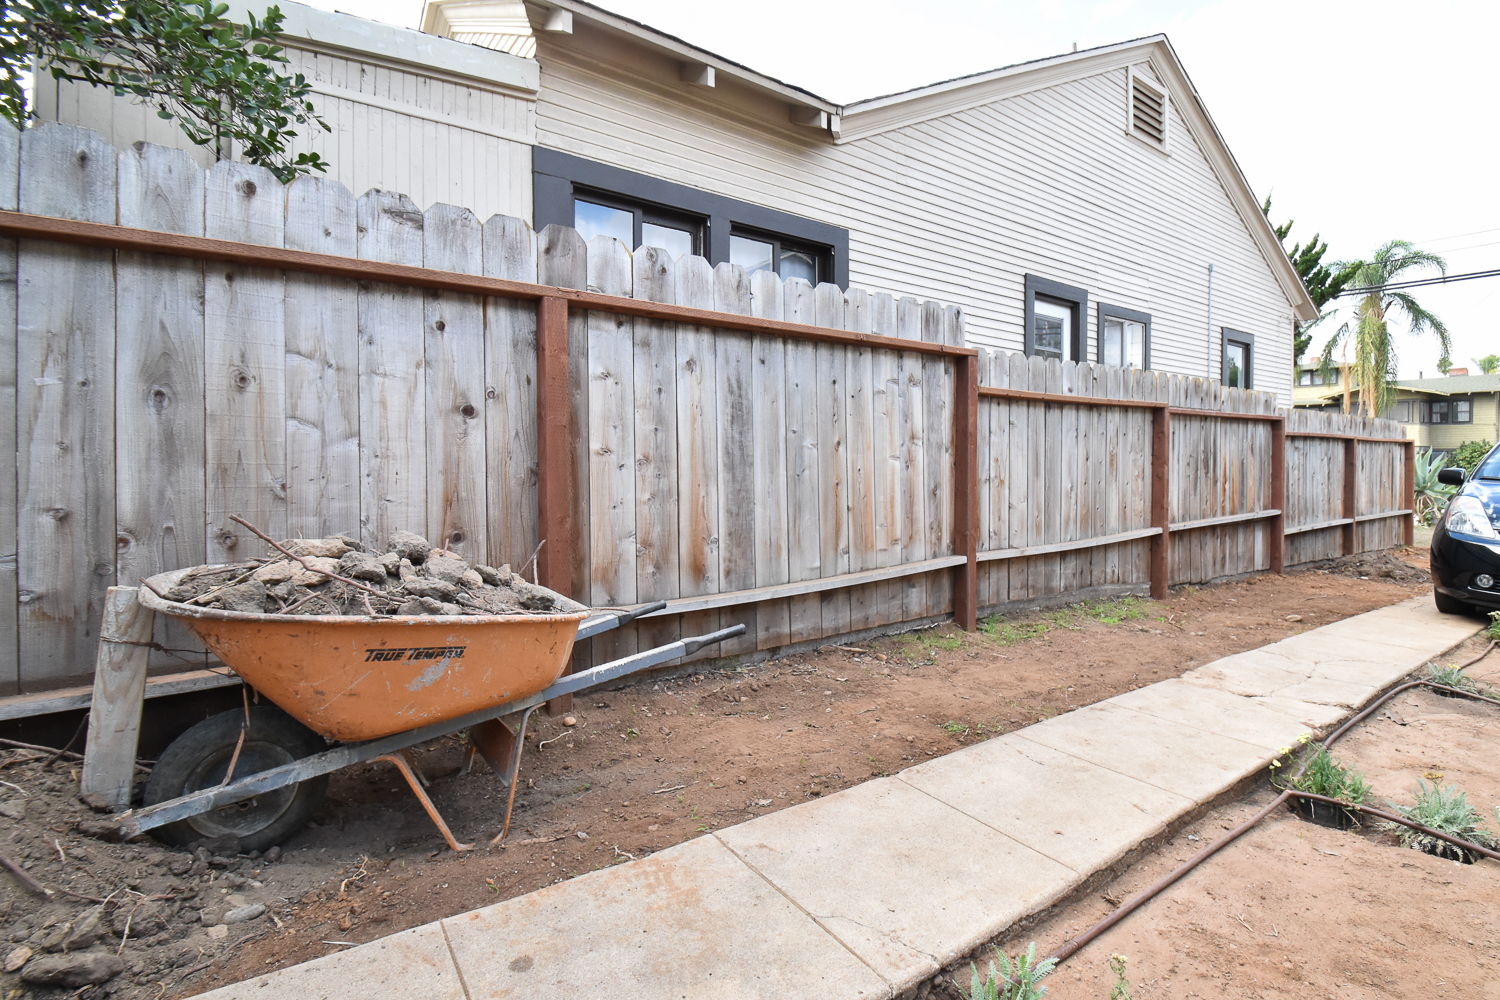 The Gold Hive How to Refresh a Fence - Powerwash-9952.jpg